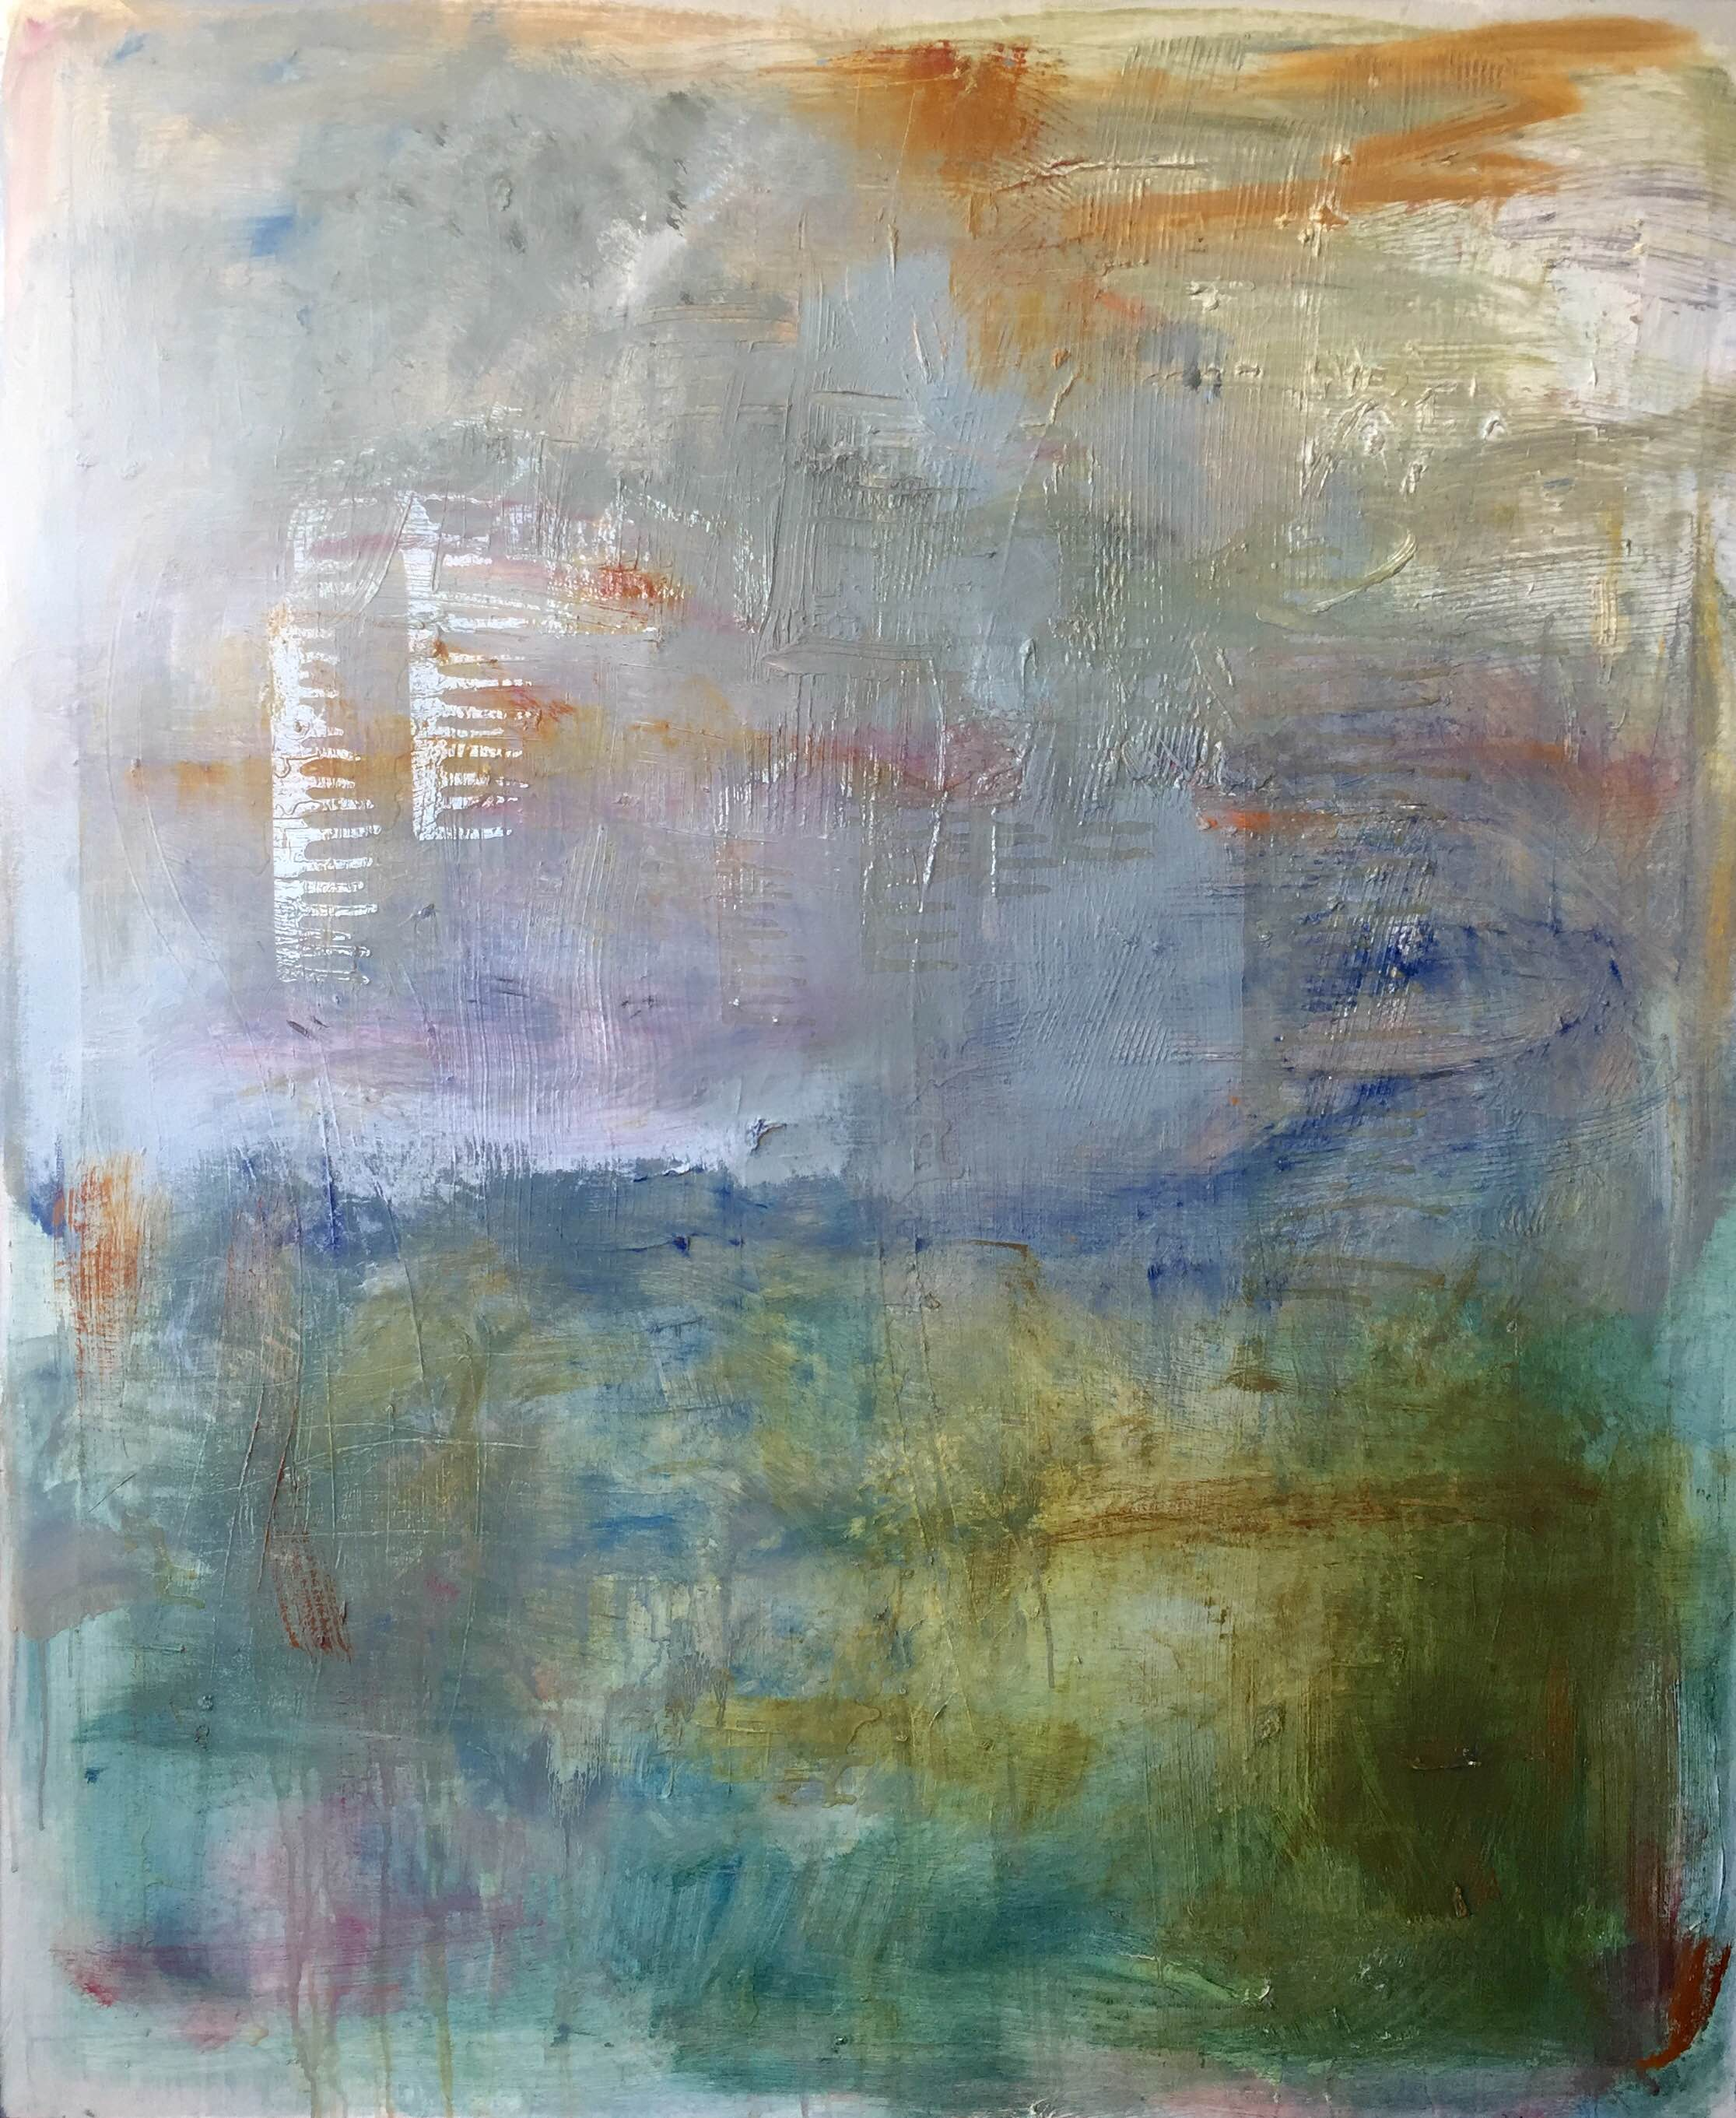 Jane Feigenson - Dreaming (Sold)